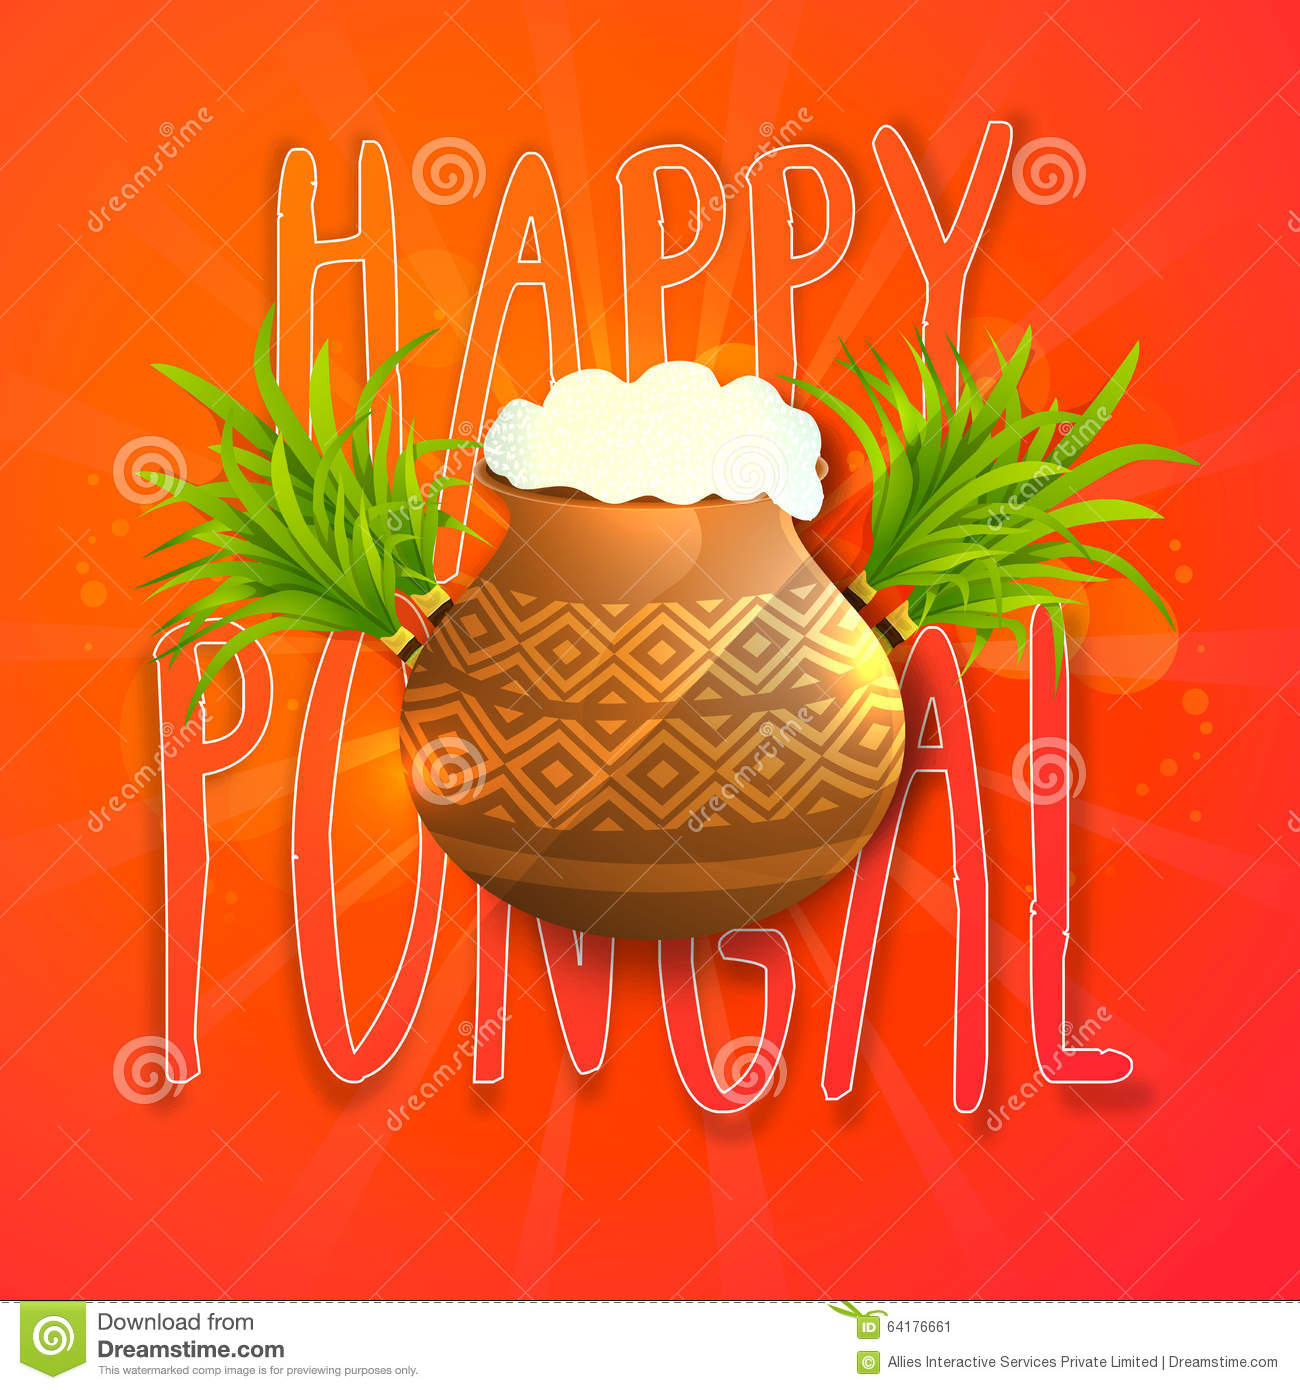 Greeting card for happy pongal celebration stock illustration greeting card for happy pongal celebration m4hsunfo